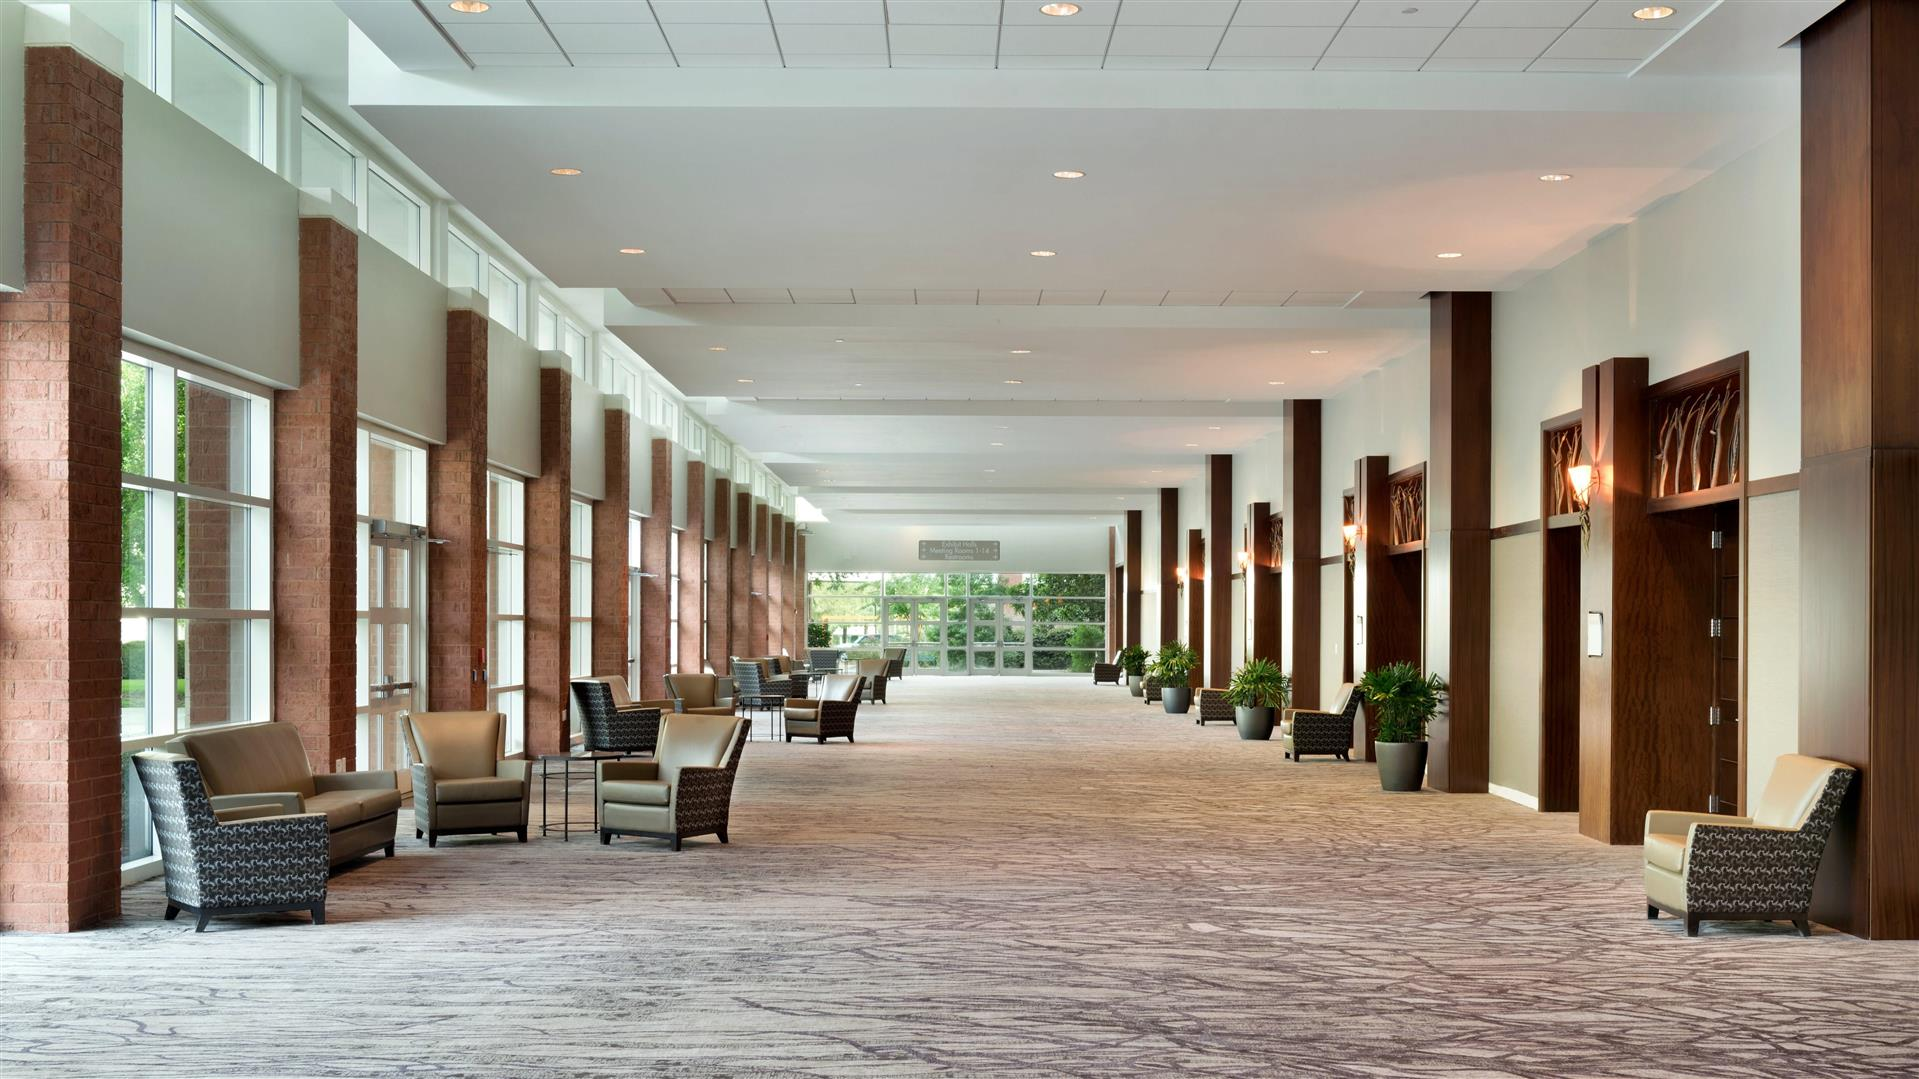 Meetings And Events At Embassy Suites By Hilton Charleston Airport